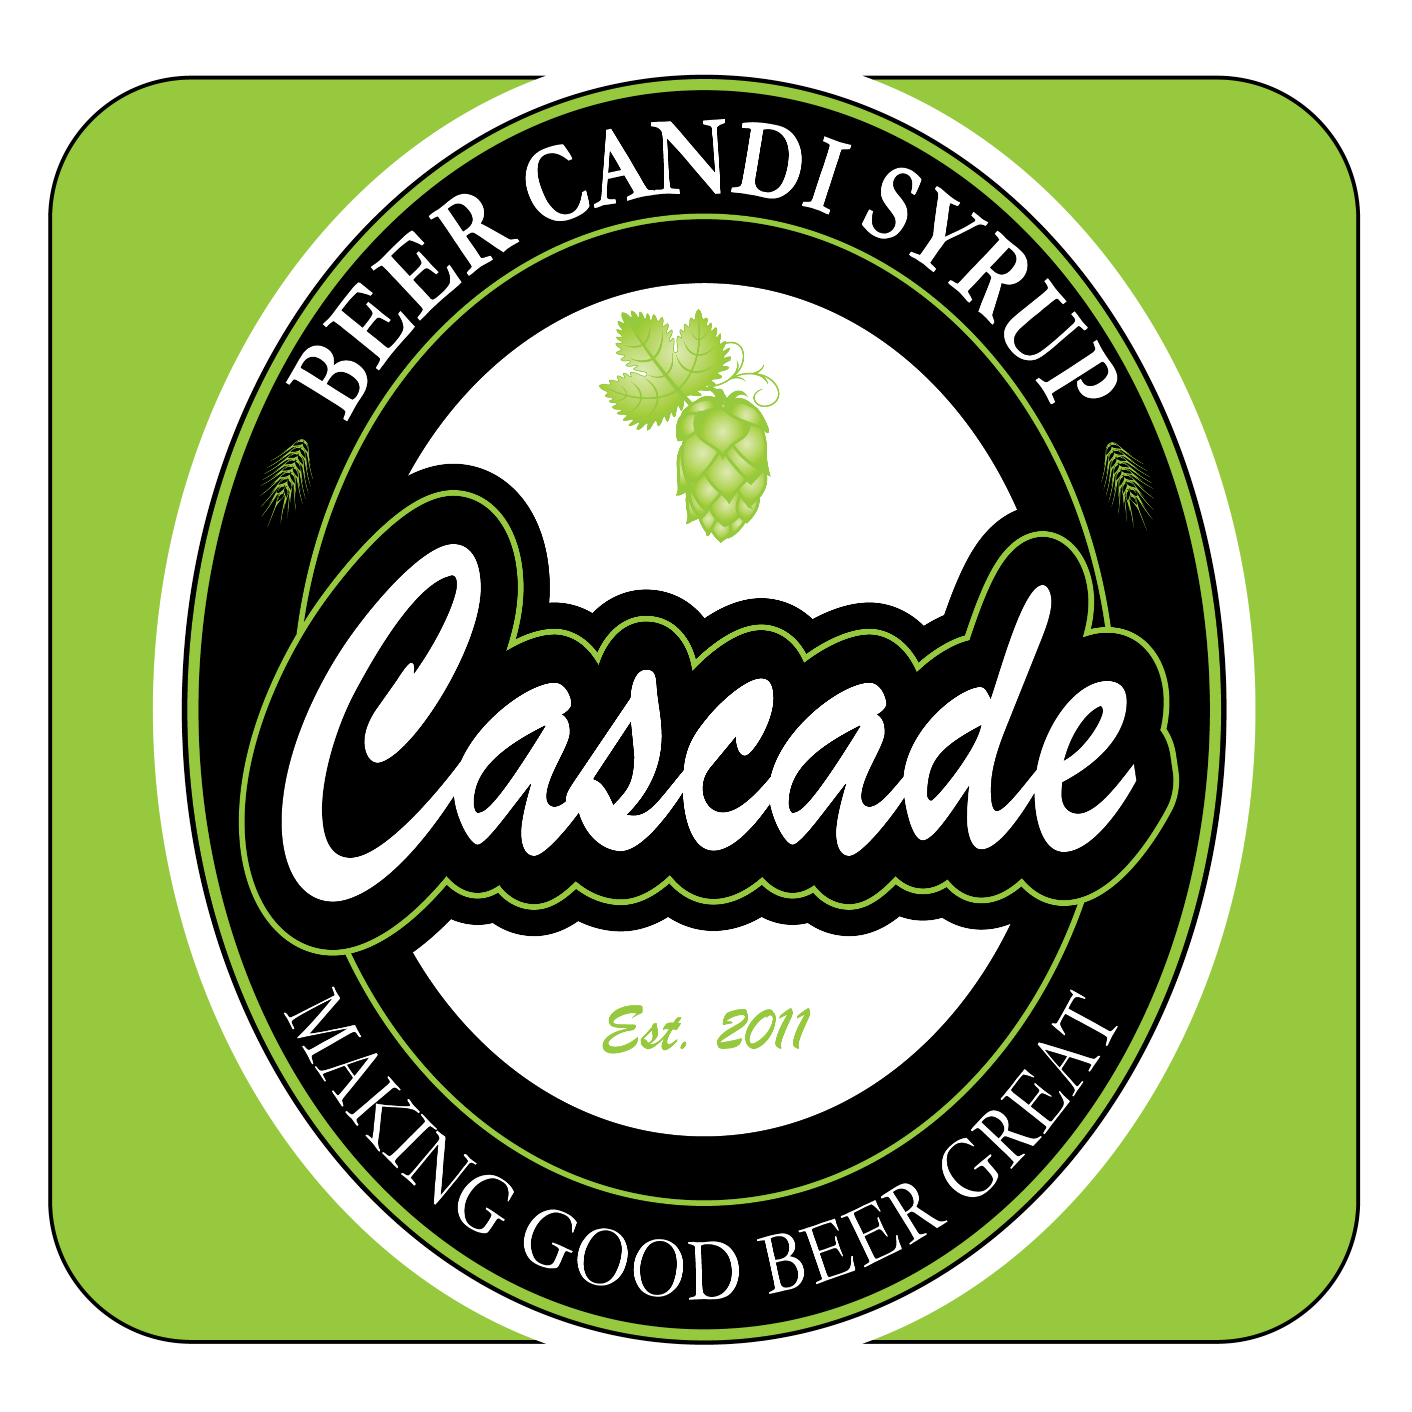 Cascade Beer Candi Syrup